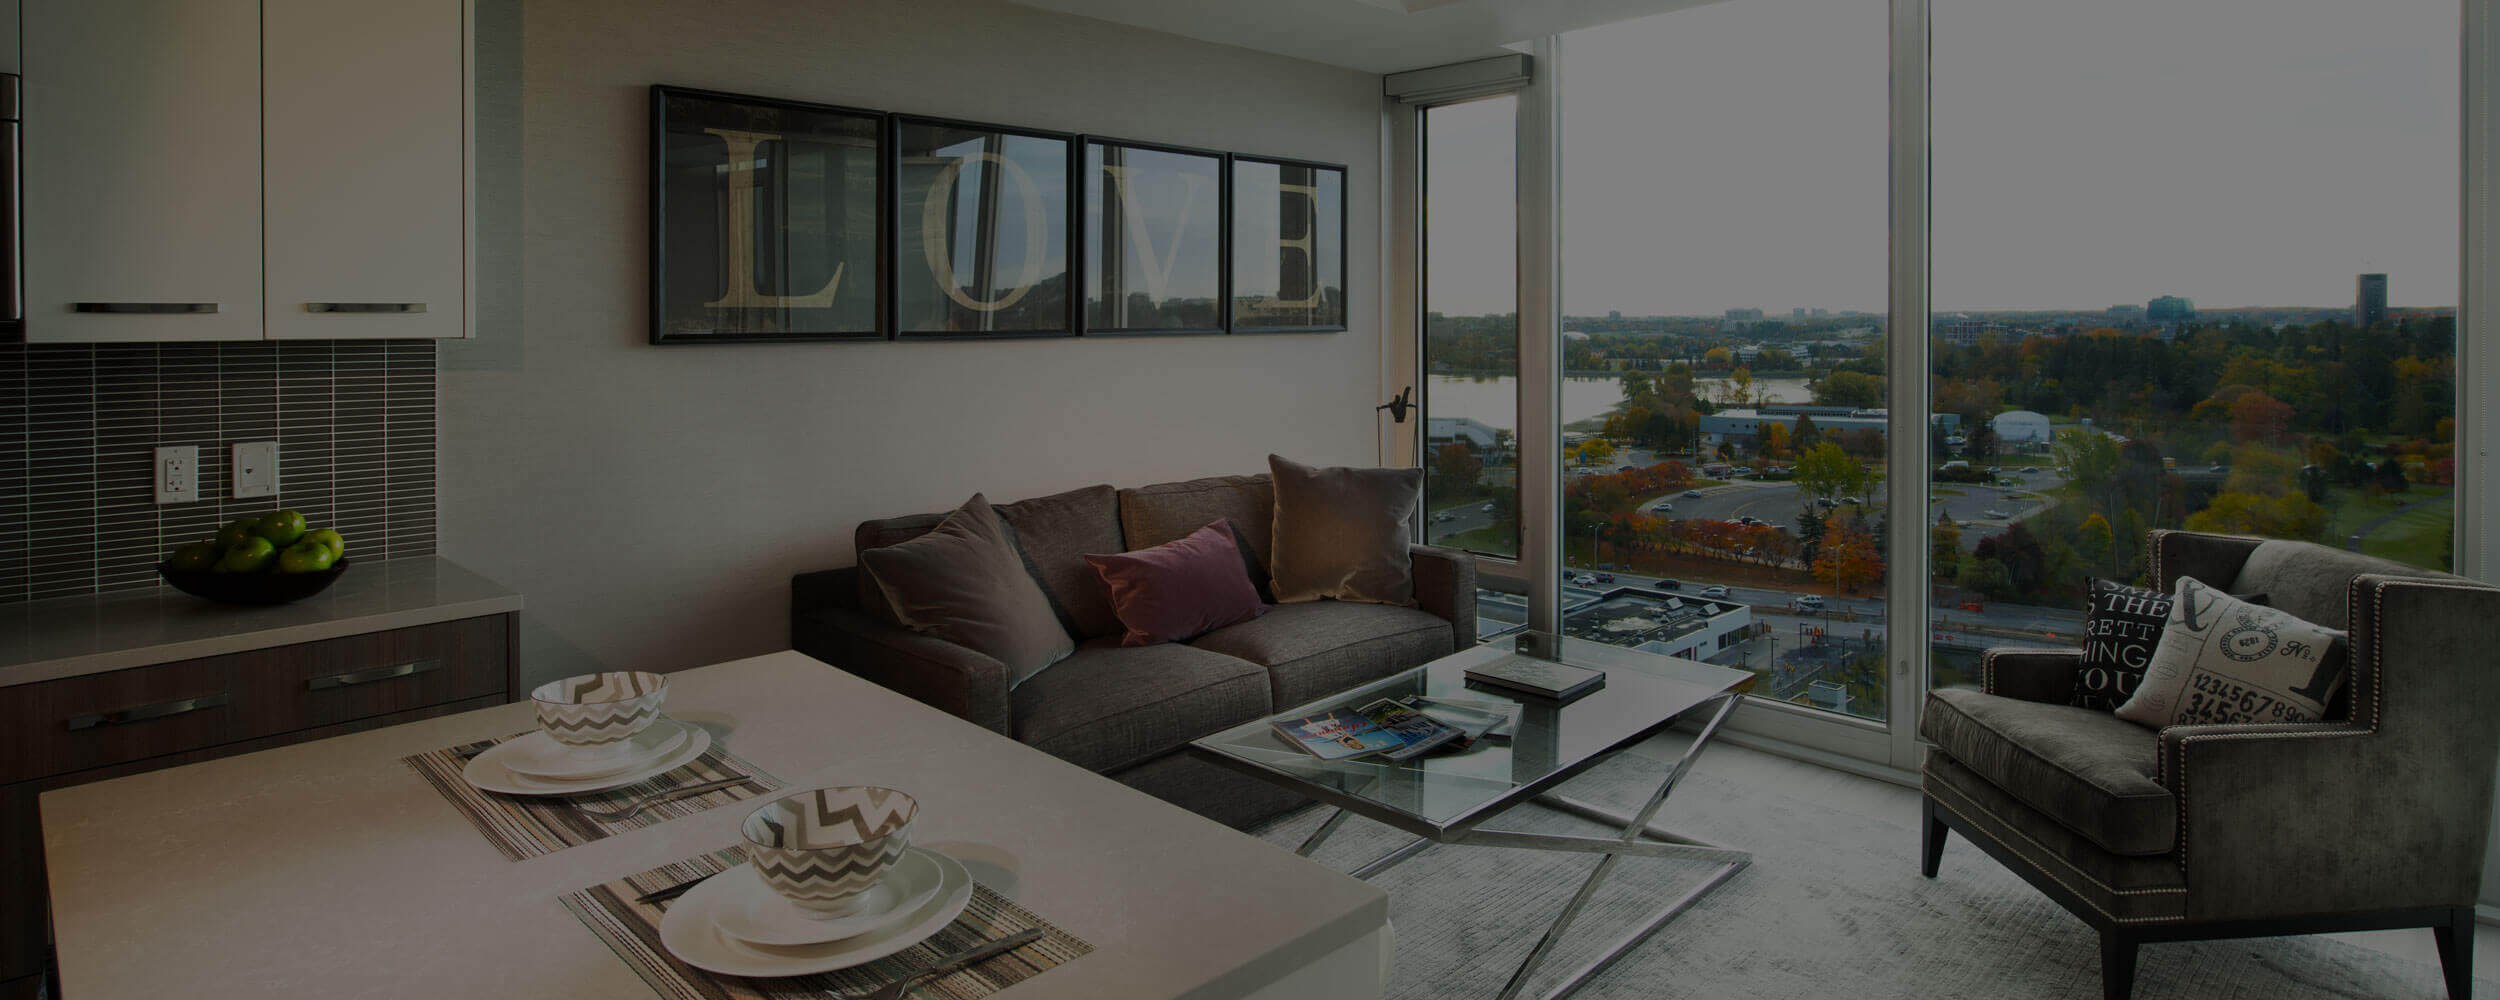 SoHo Champagne Residences in Ottawa furnished bedroom suite with living and kitchen and Dow's Lake views